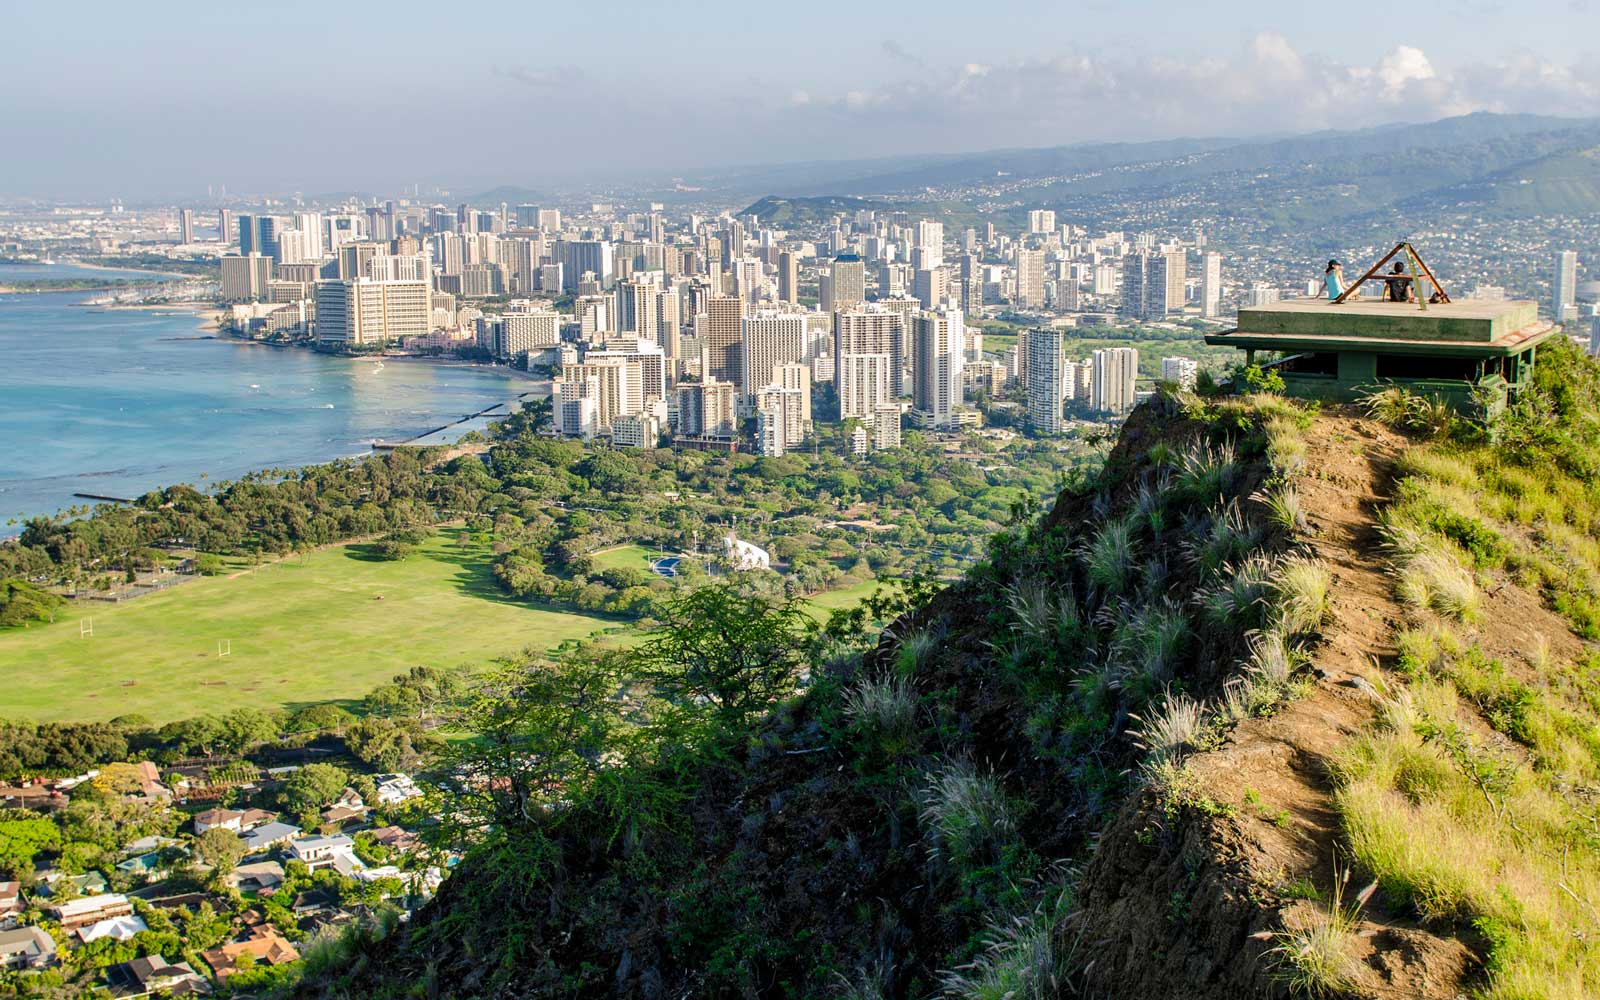 Honolulu from atop Diamond Head State Monument (Leahi Crater), Honolulu, Oahu, Hawaii